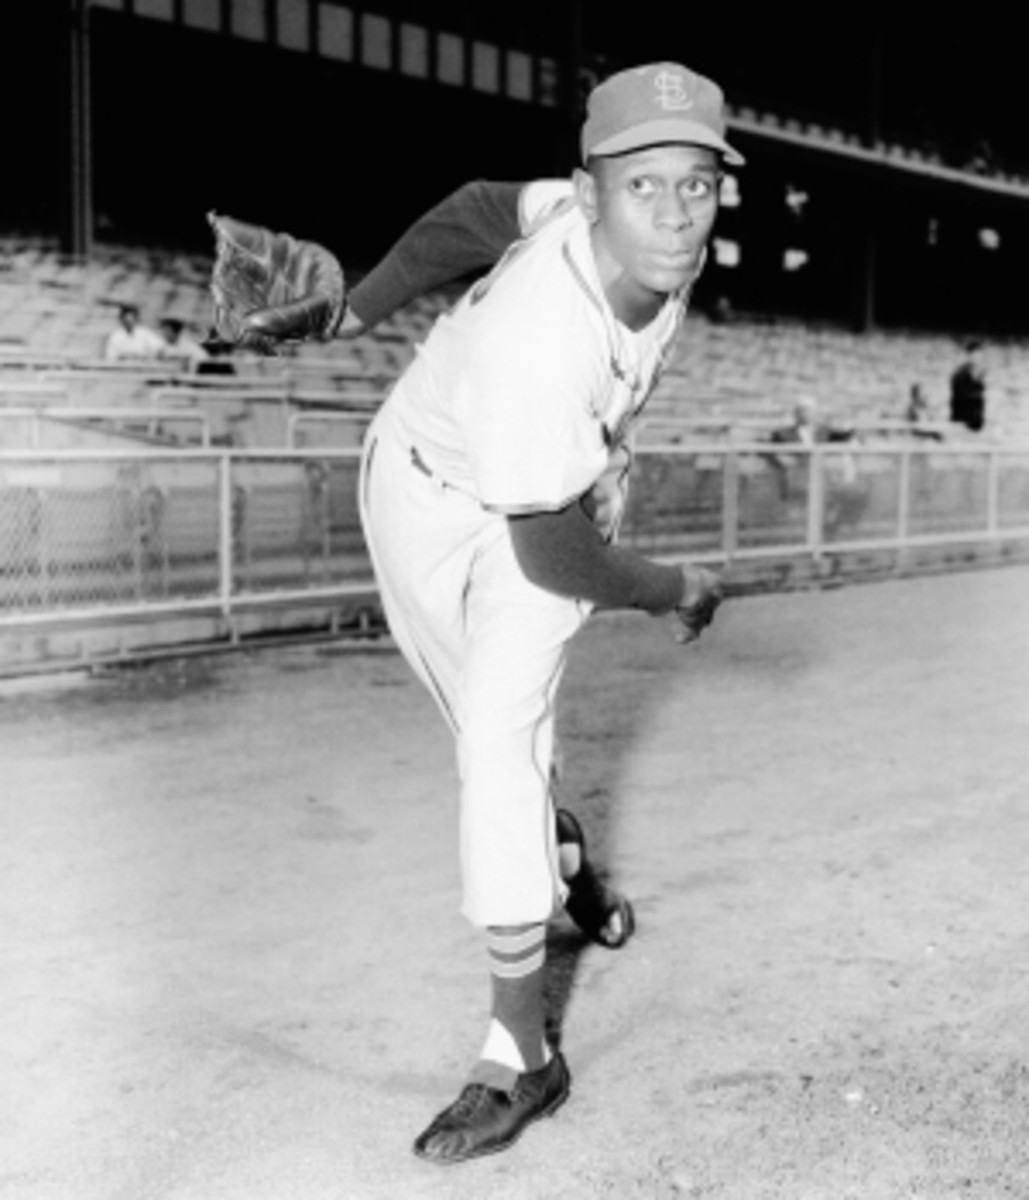 Portrait of pitcher Satchel Paige, of the St. Louis Browns, prior to a game against the New York Yankees in 1952.